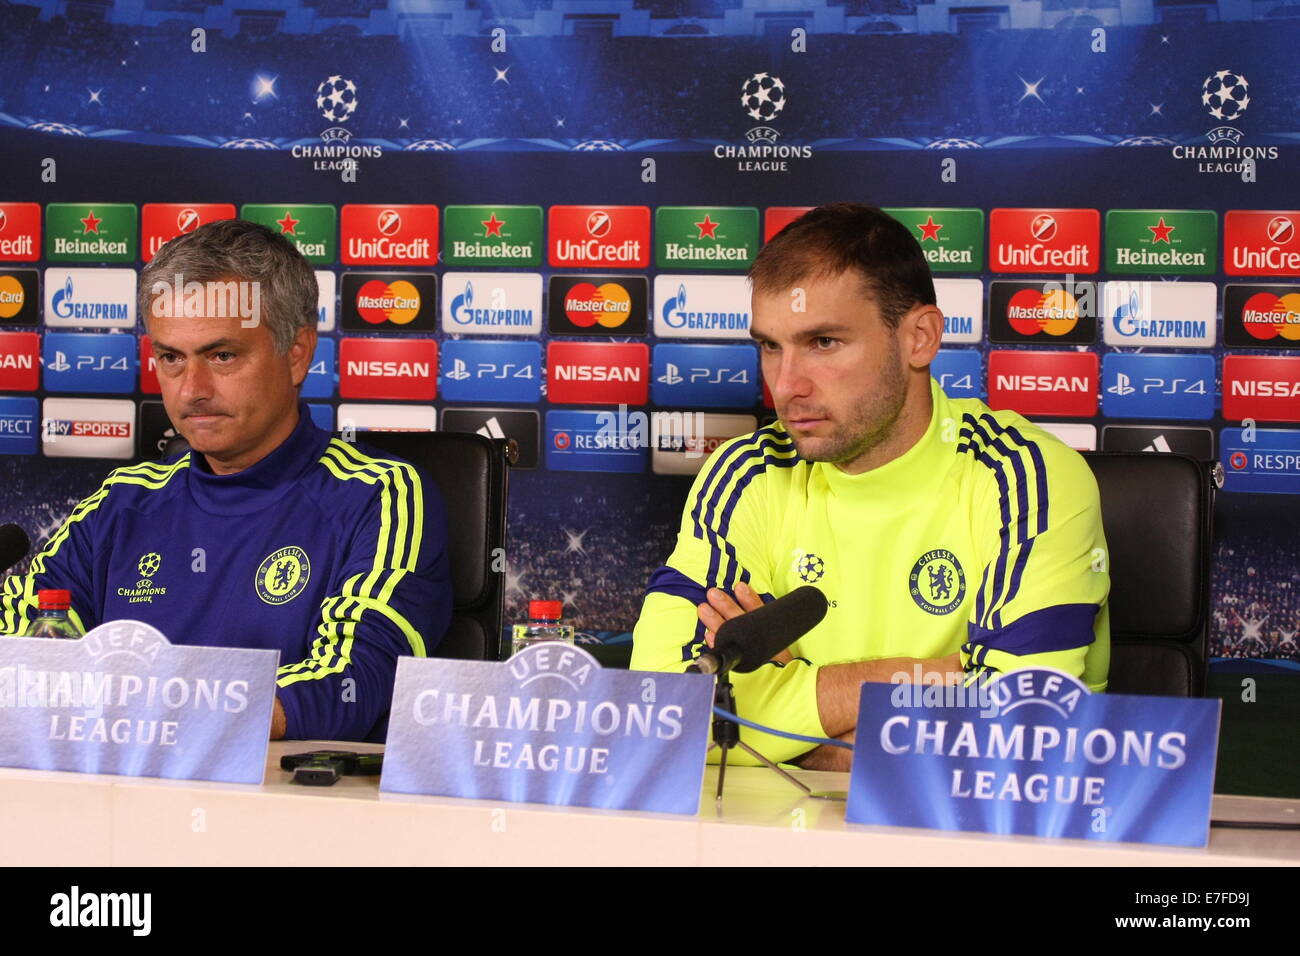 Nemanja Matic, Chelsea Football Club talks to media priot yo Champions league match against Schalke - Stock Image